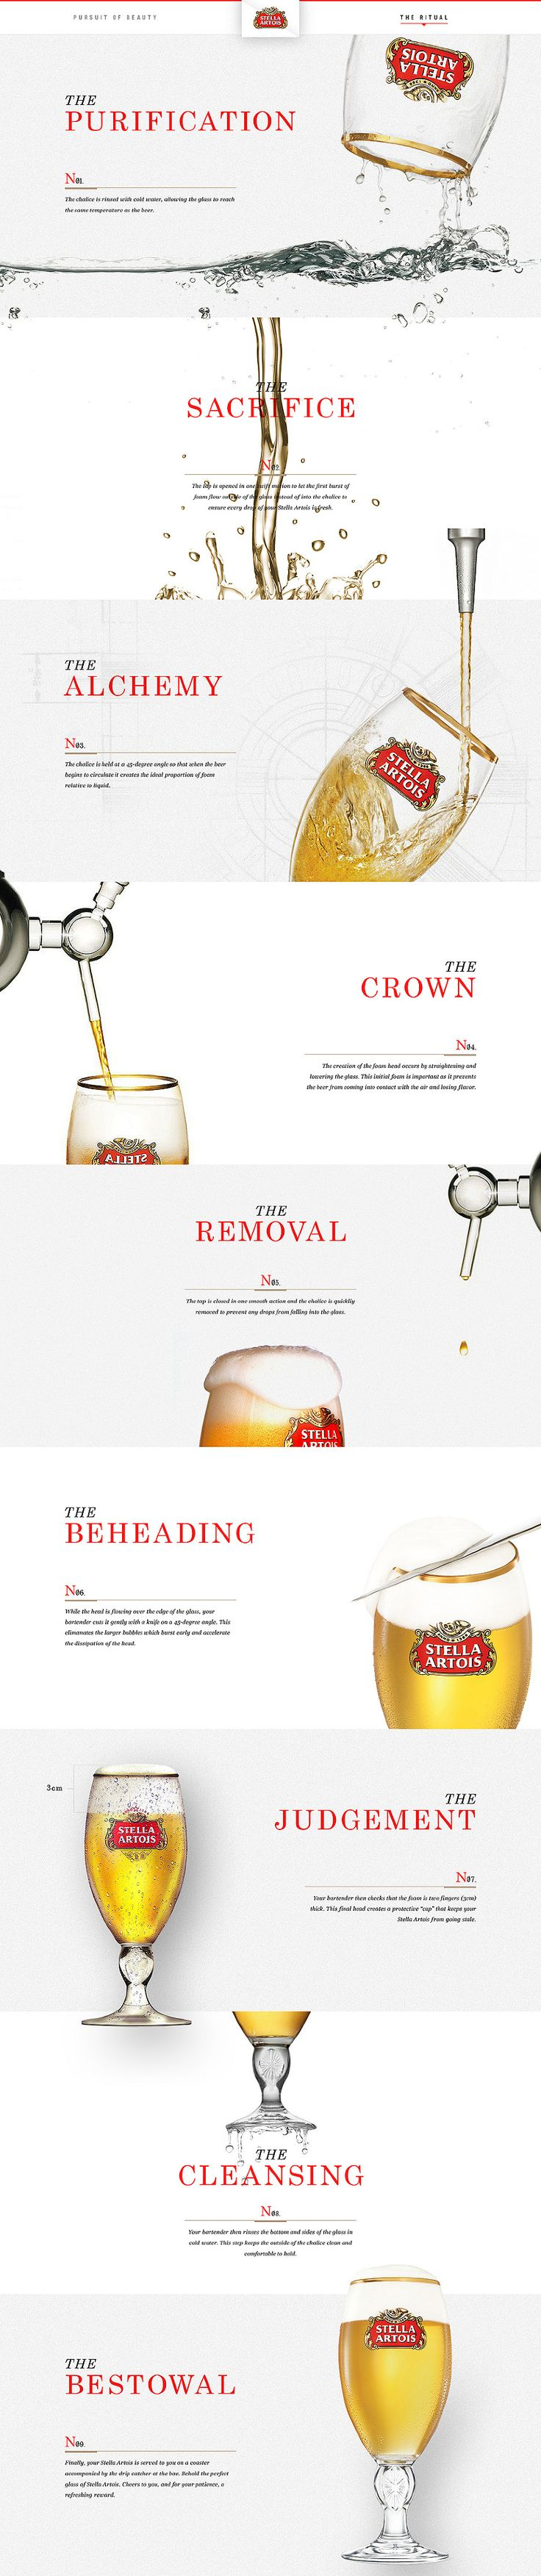 Stella Artois - Shape Layer - Portfolio of Bryan Le    Website design layout. Inspirational UX/UI design sample.  Visit us at: www.sodapopmedia.com #WebDesign #UX #UI #WebPageLayout #DigitalDesign #Web #Website #Design #Layout